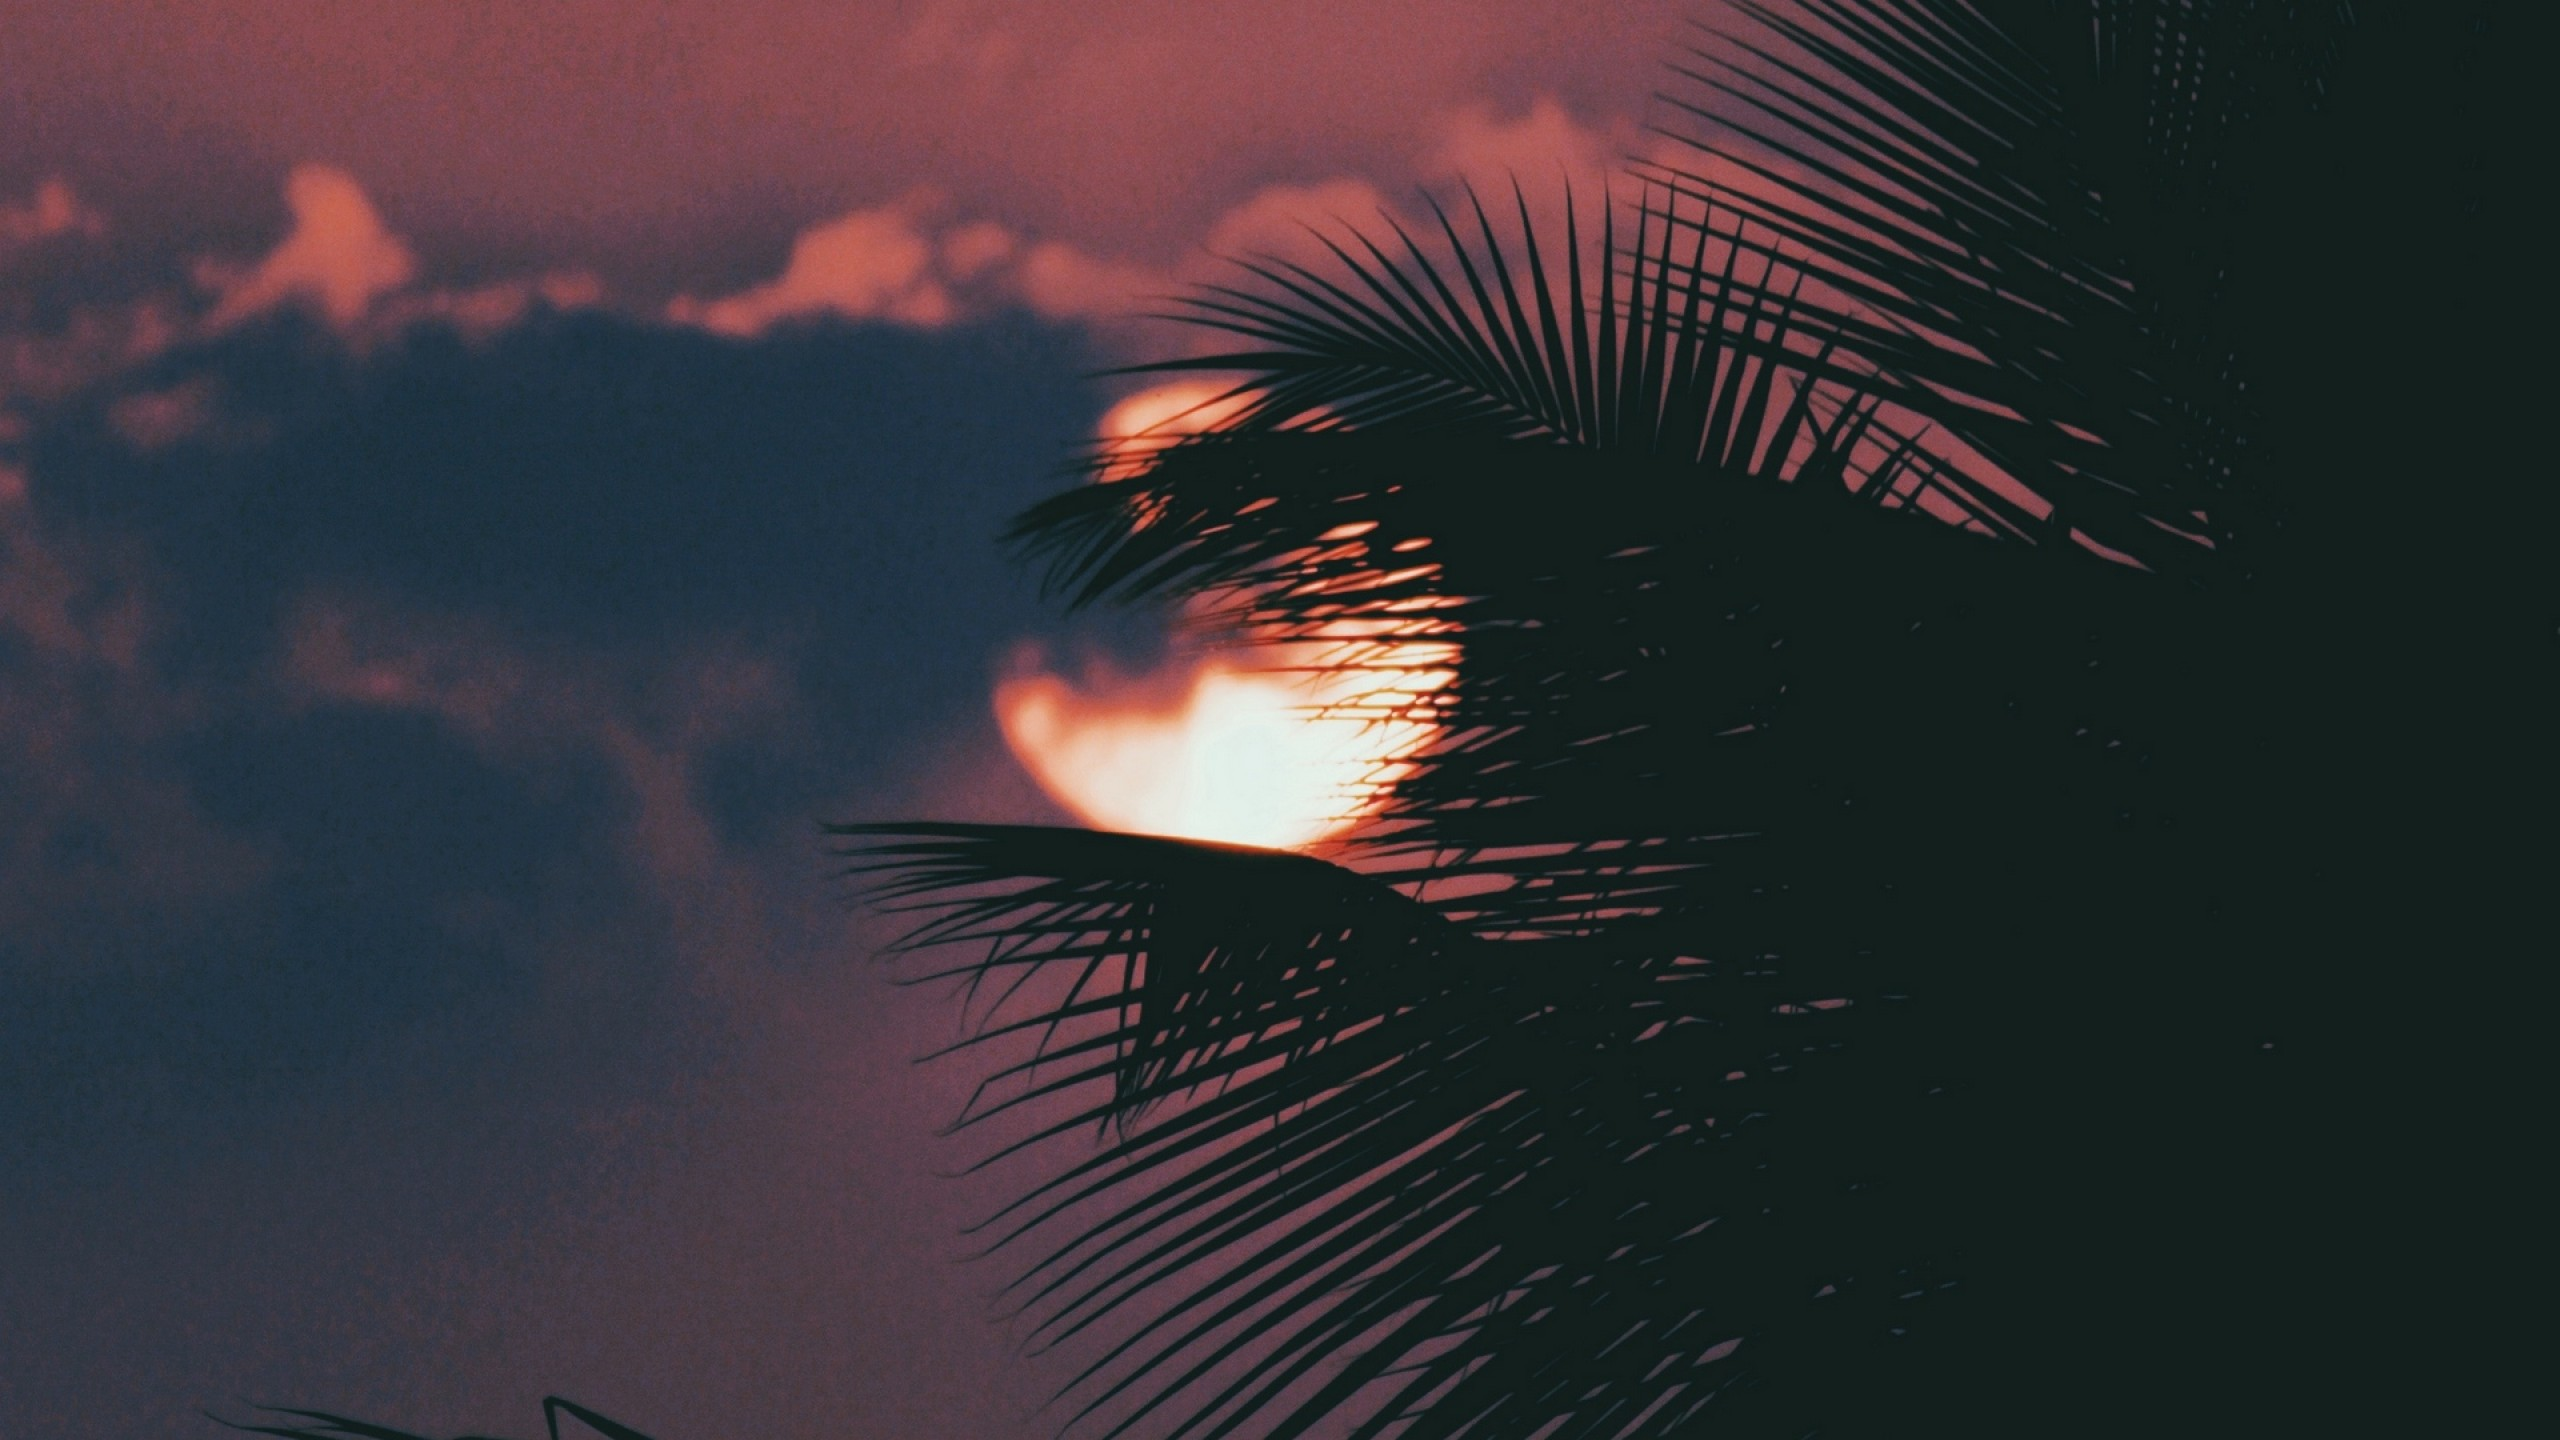 Palm tree hiding the moon HD Wallpaper Youtube Cover Photo